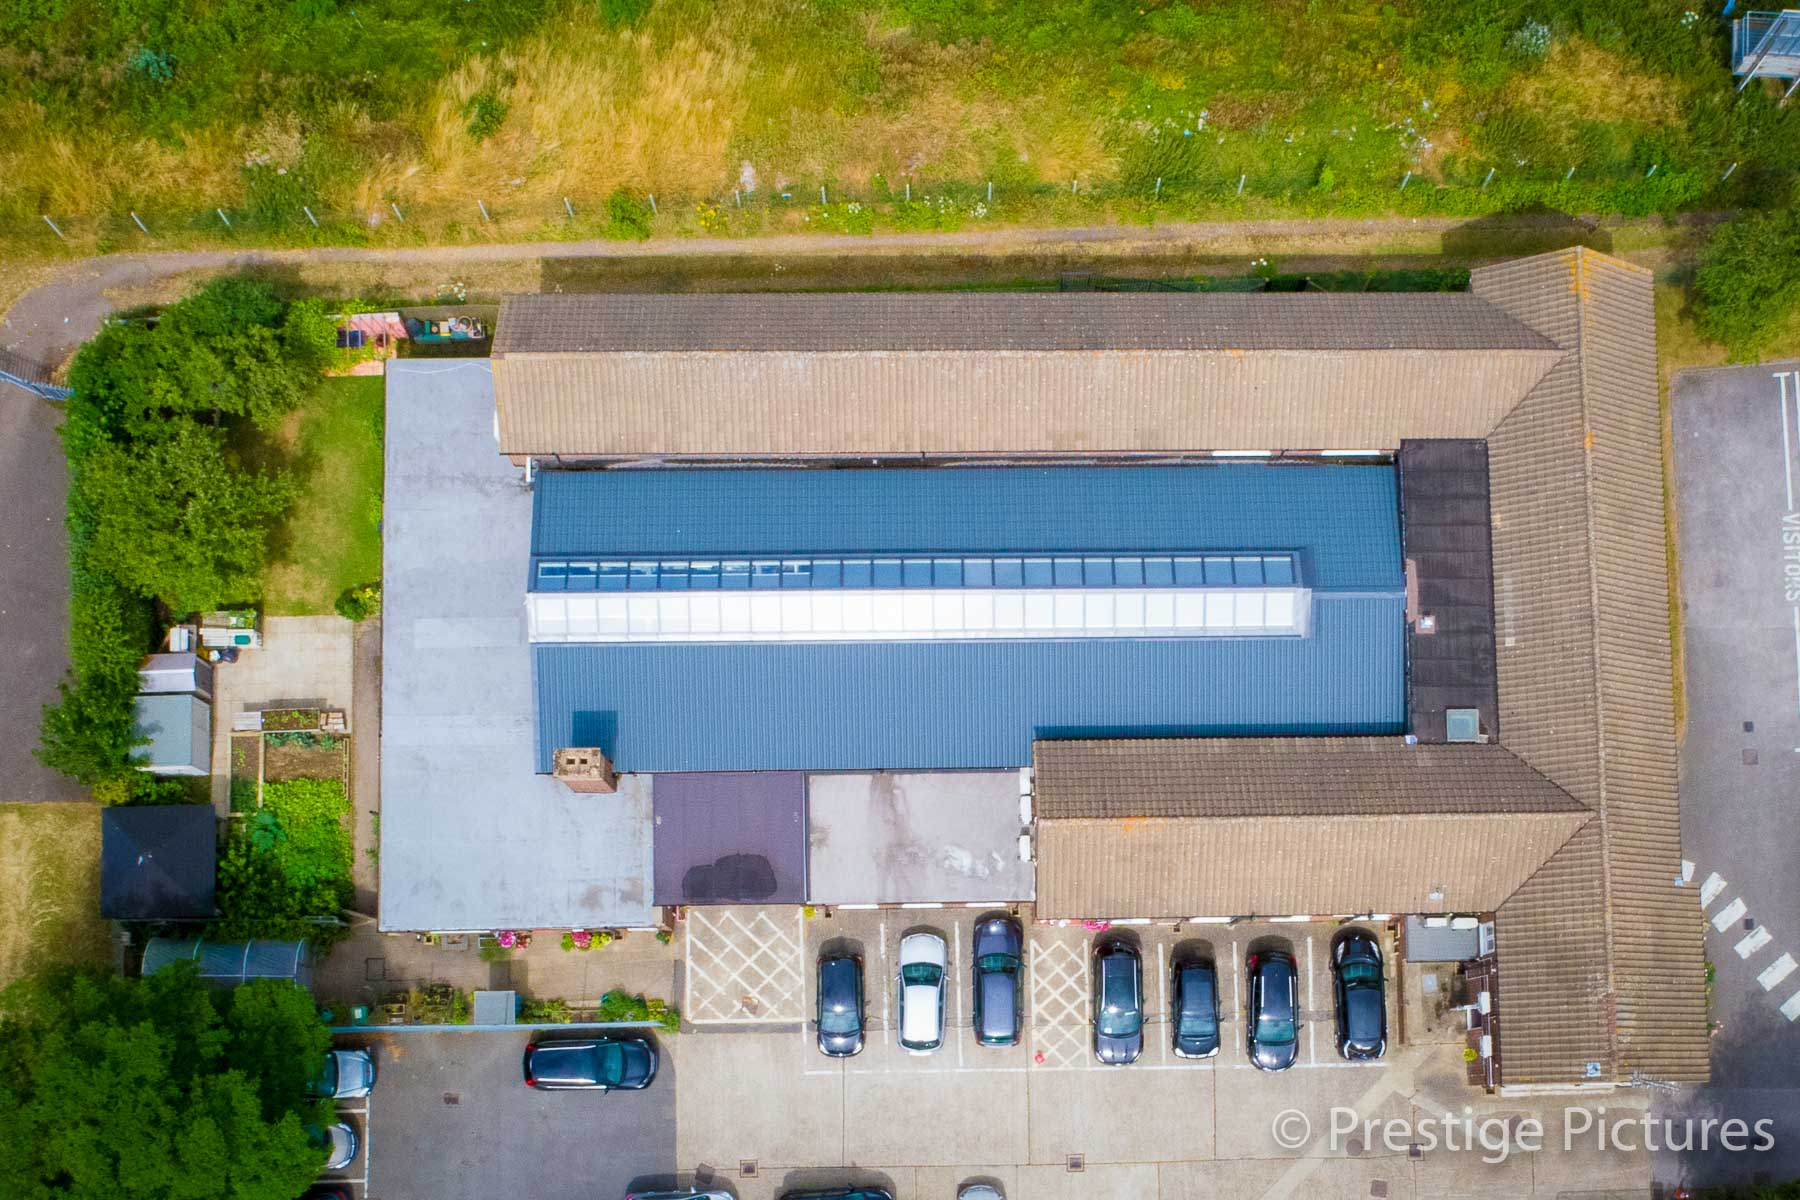 Survey of an Industrial SIte by Prestige Pictures